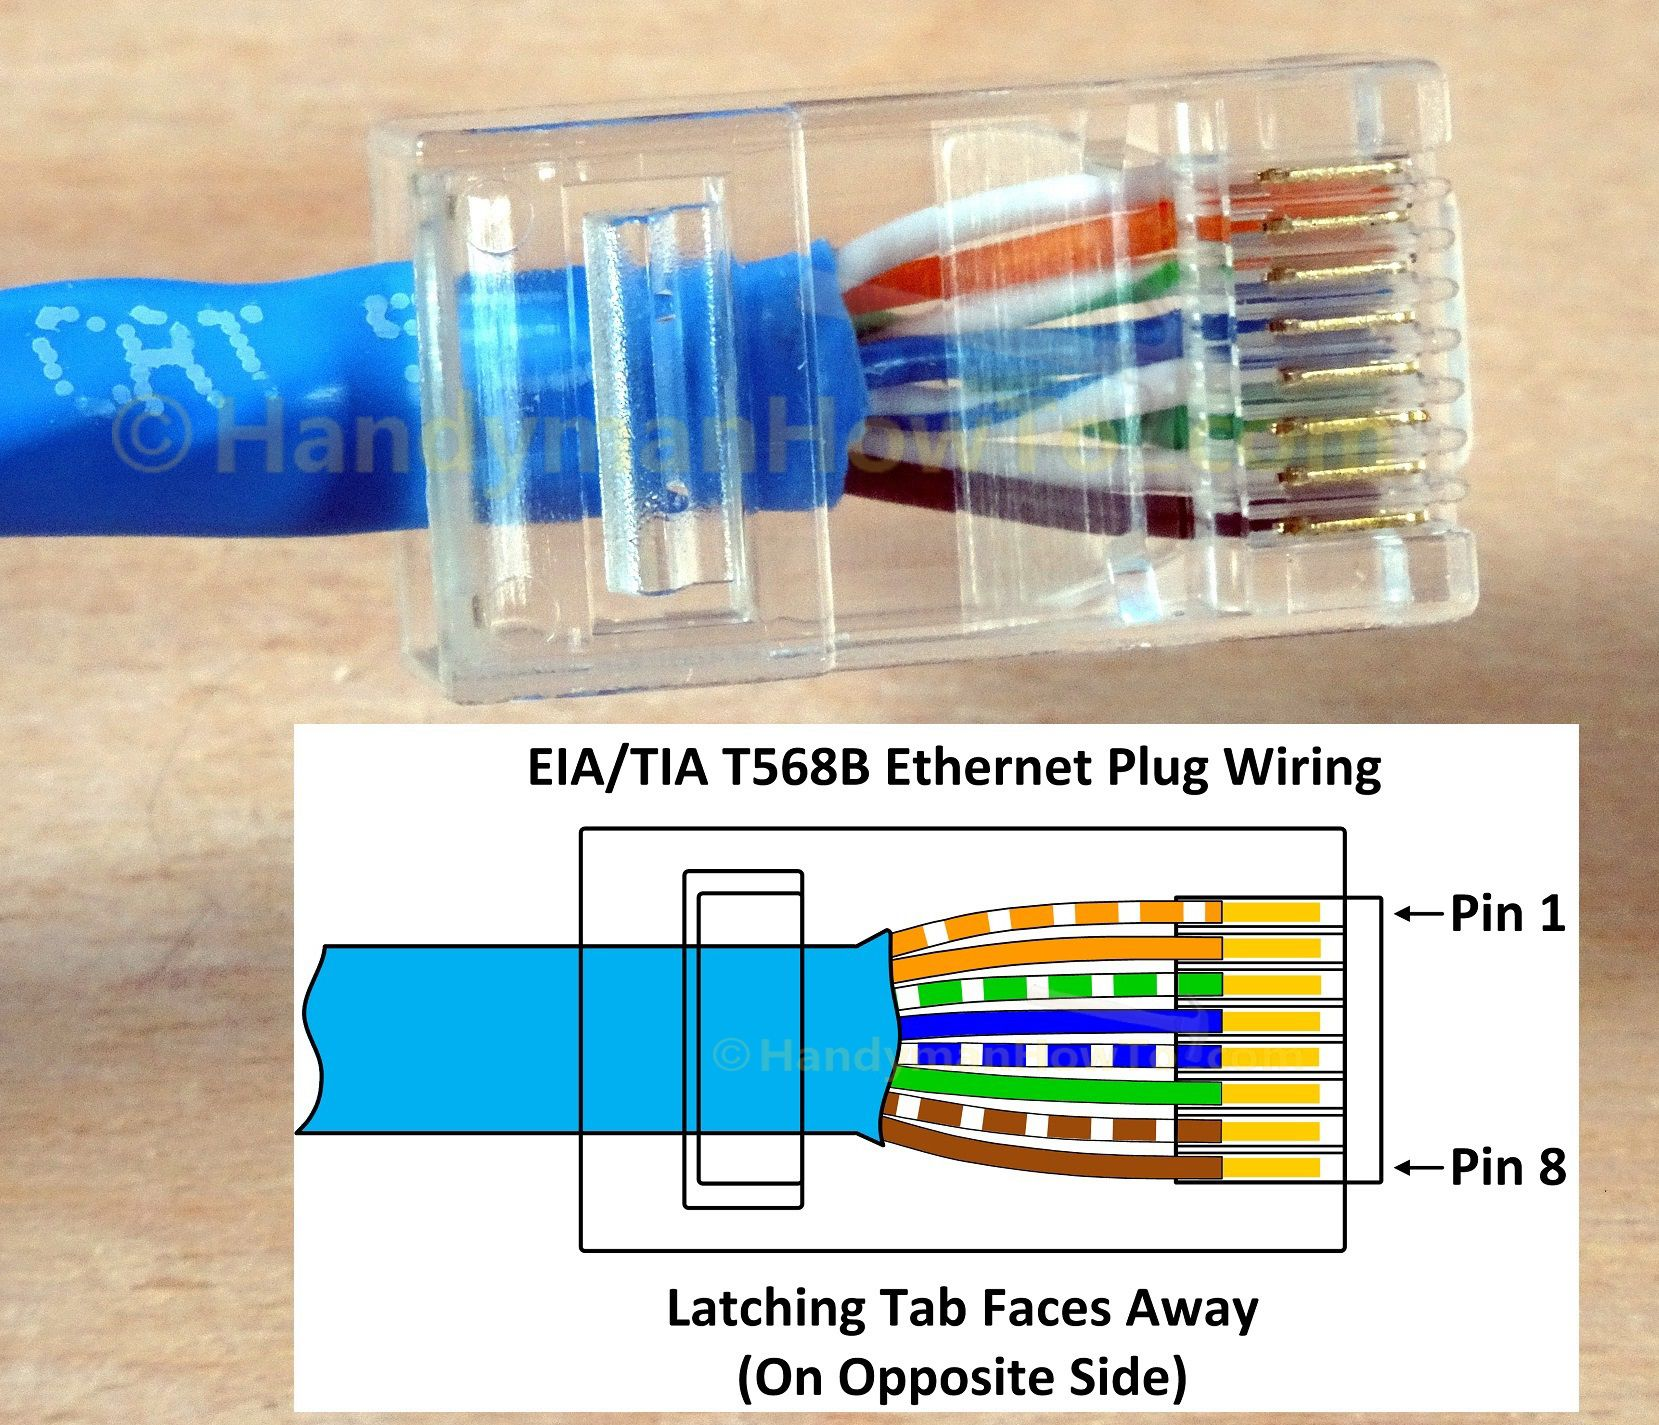 rj45 ethernet plug wiring per eai tia t568b projects pinterest rh pinterest com T568B RJ45 Layout T568B Color Code